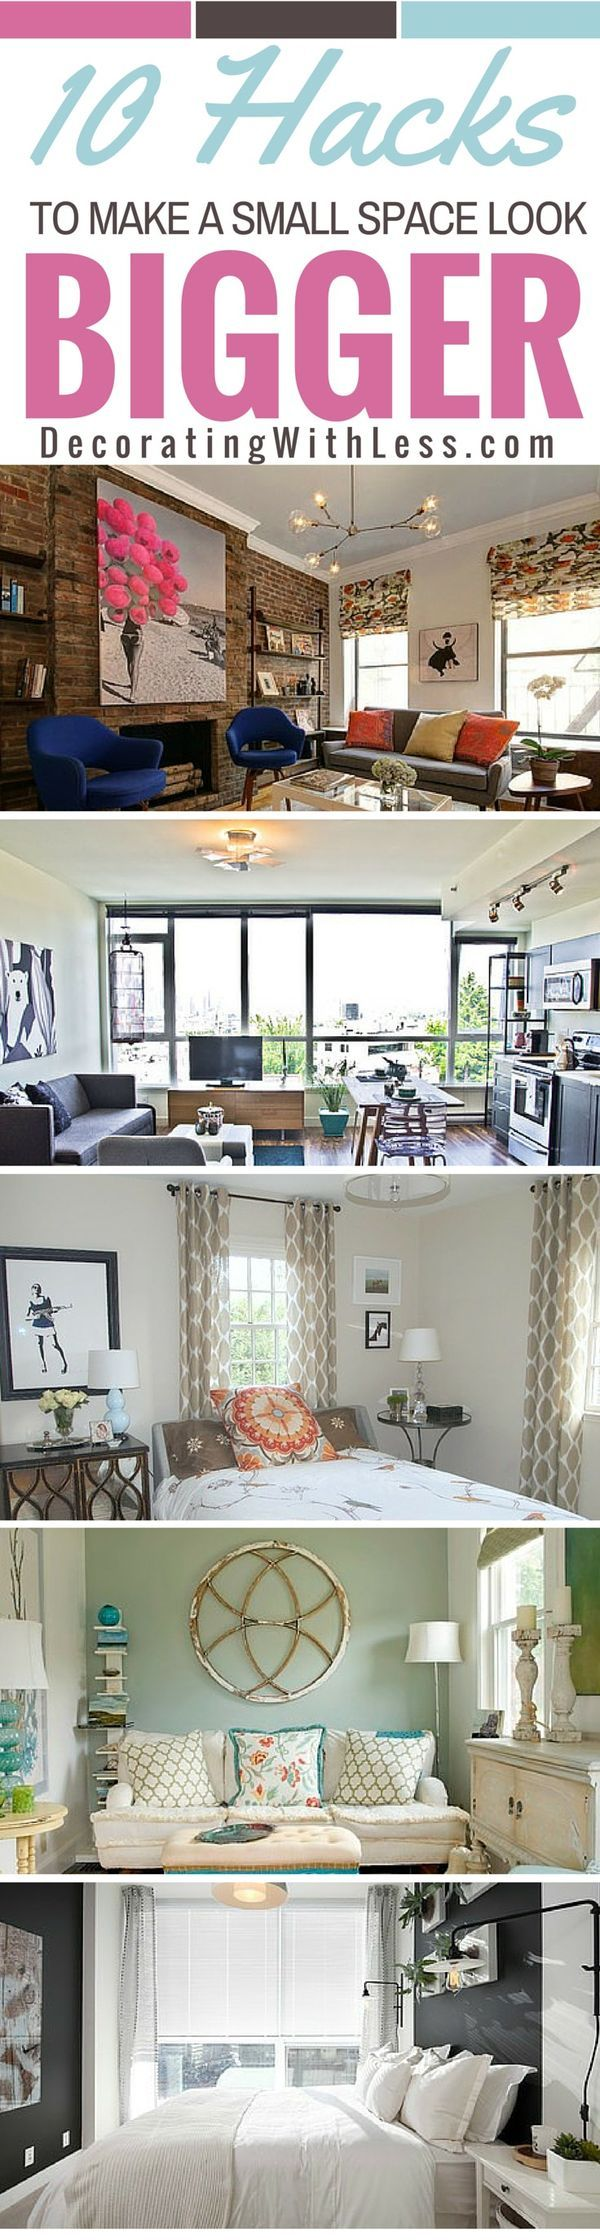 How To Make A Small Room Look Bigger 10 Tricks To Make A Small Space Look Bigger Diy Livingroom